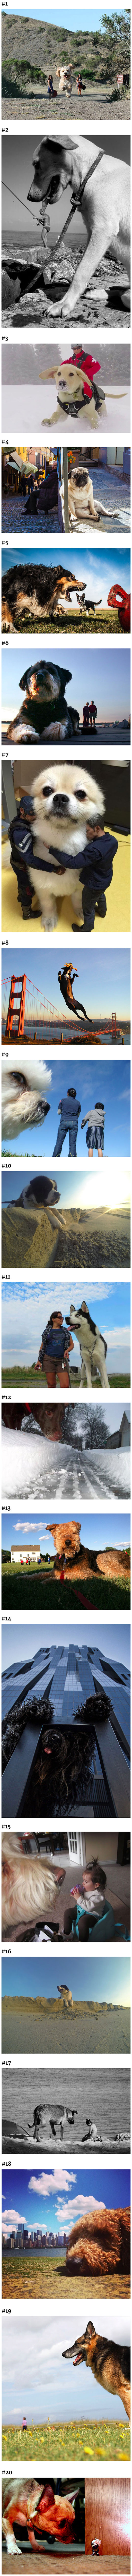 No, giant dogs have not invaded earth. These photos of enormous pooches create the illusion of great size through the intentional or accidental use of mixed distances without clear reference points.